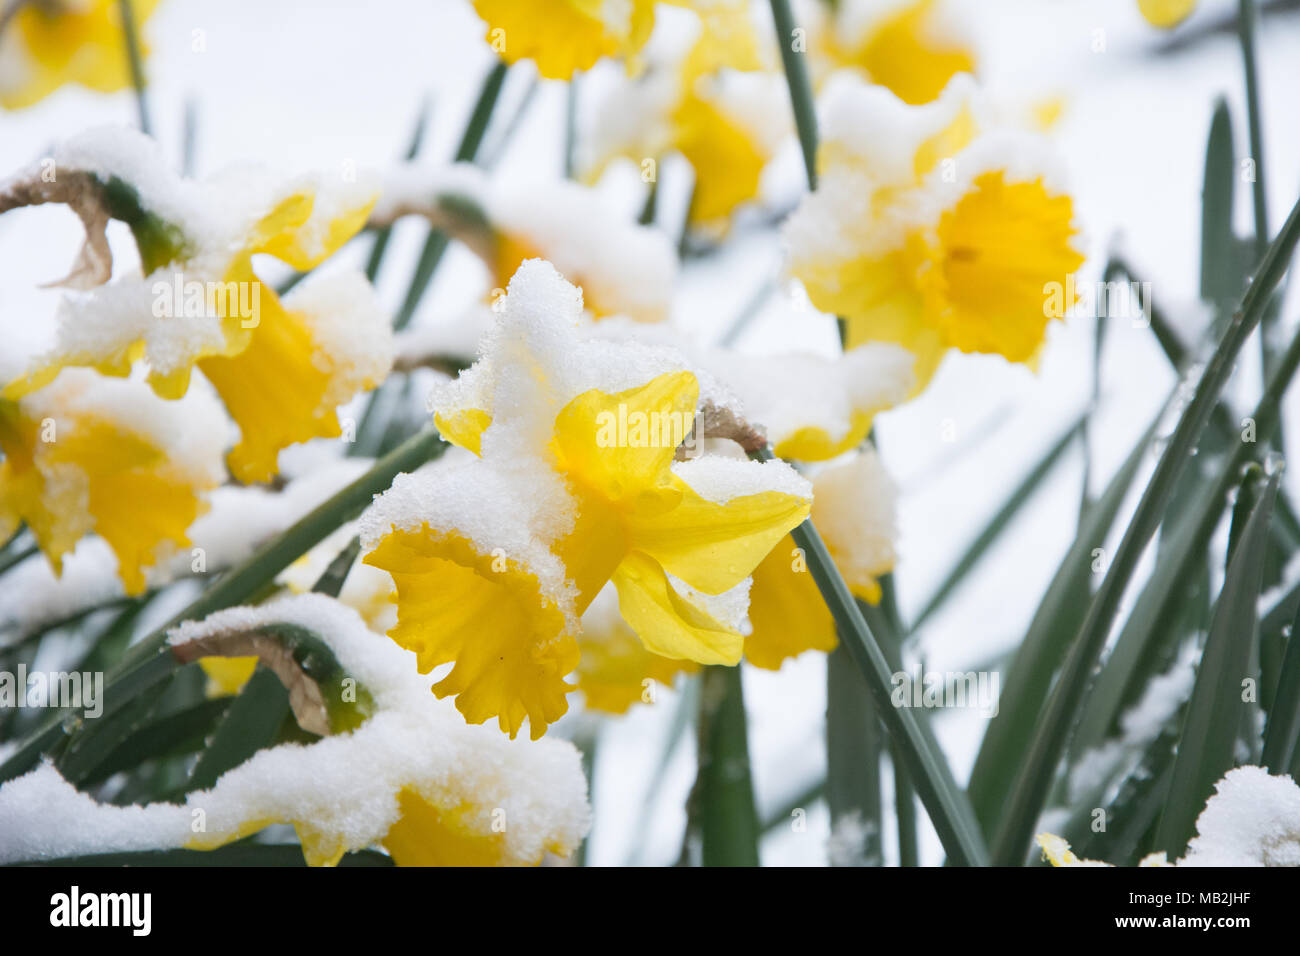 Beautiful yellow daffodils in full bloom in garden pots spring in beautiful yellow daffodils in full bloom in garden pots spring in an english garden some with a covering of late snow on the flowers mightylinksfo